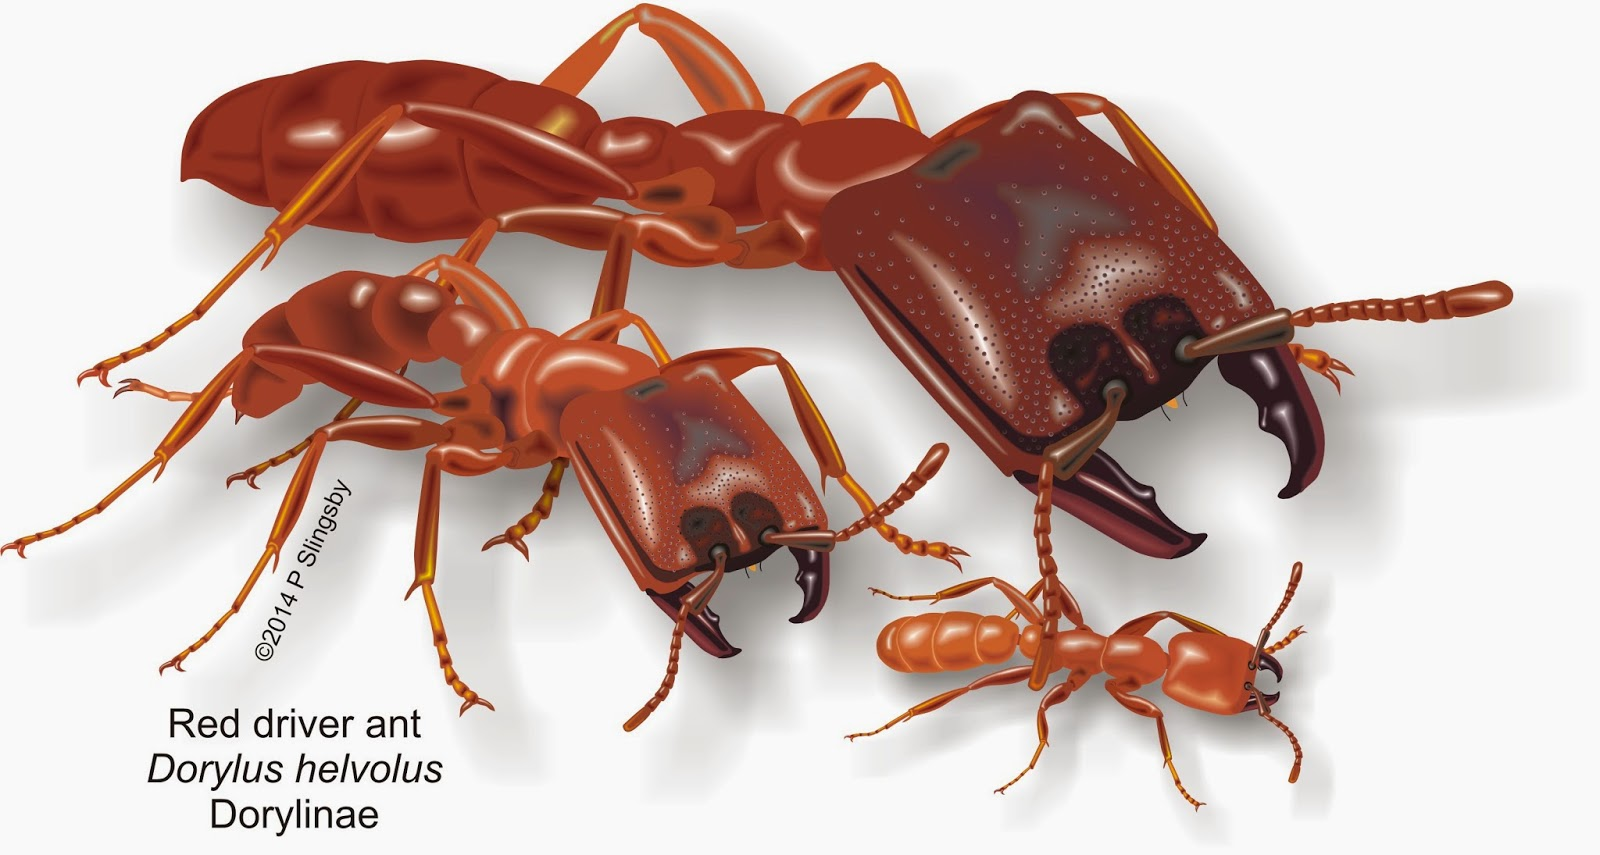 Ants of Southern Africa -: Dorylus helvolus: the Red Driver ant